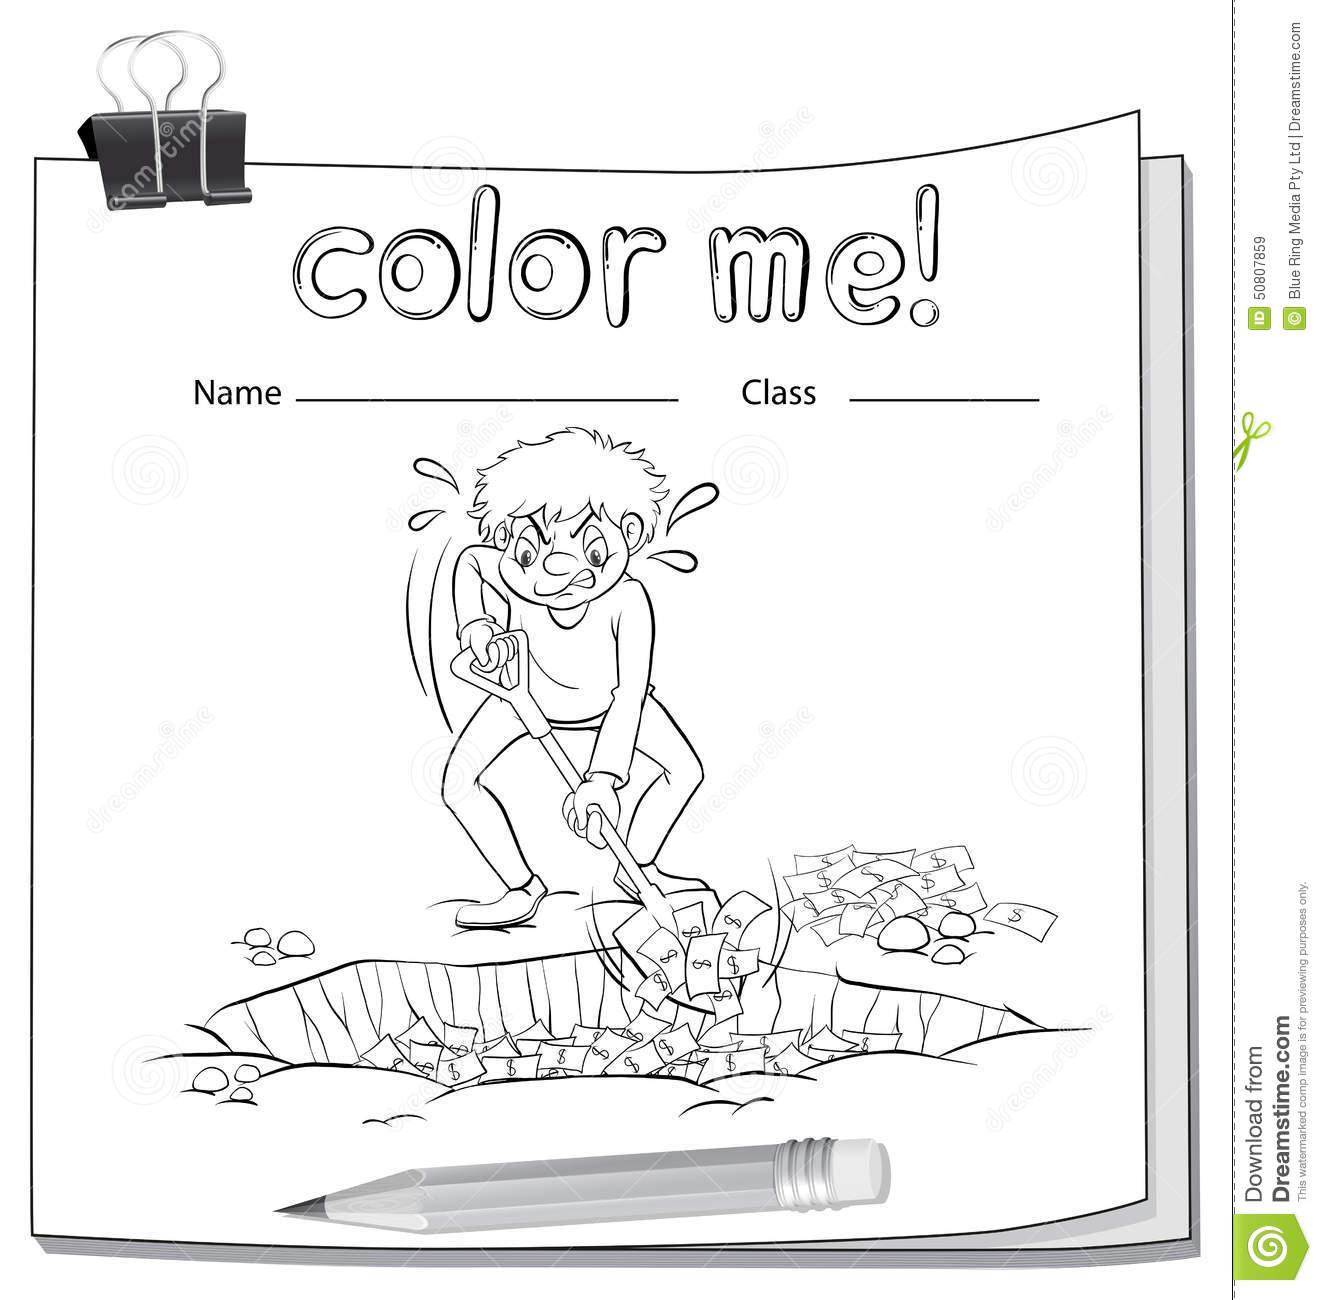 Worksheet With A Man Digging Stock Vector